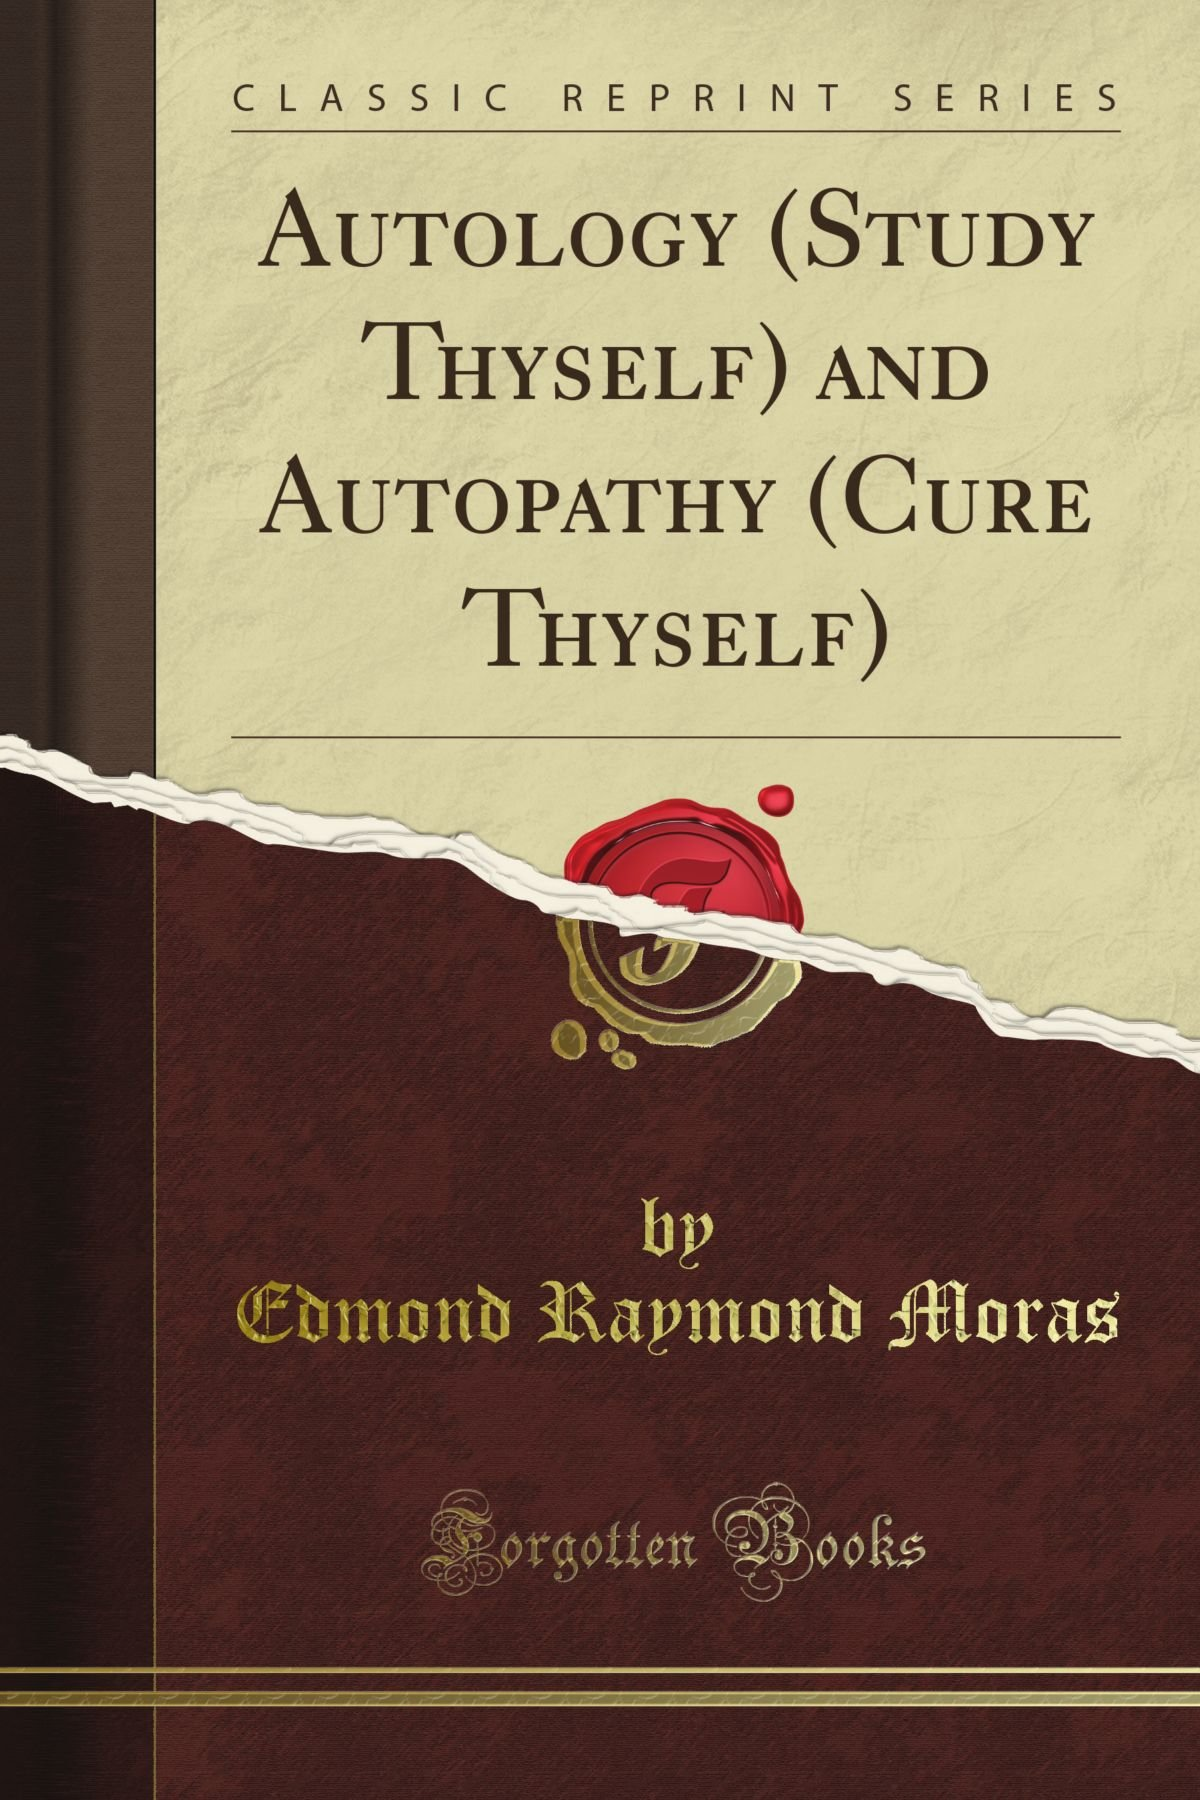 Download Autology (Study Thyself) and Autopathy (Cure Thyself) (Classic Reprint) PDF ePub book